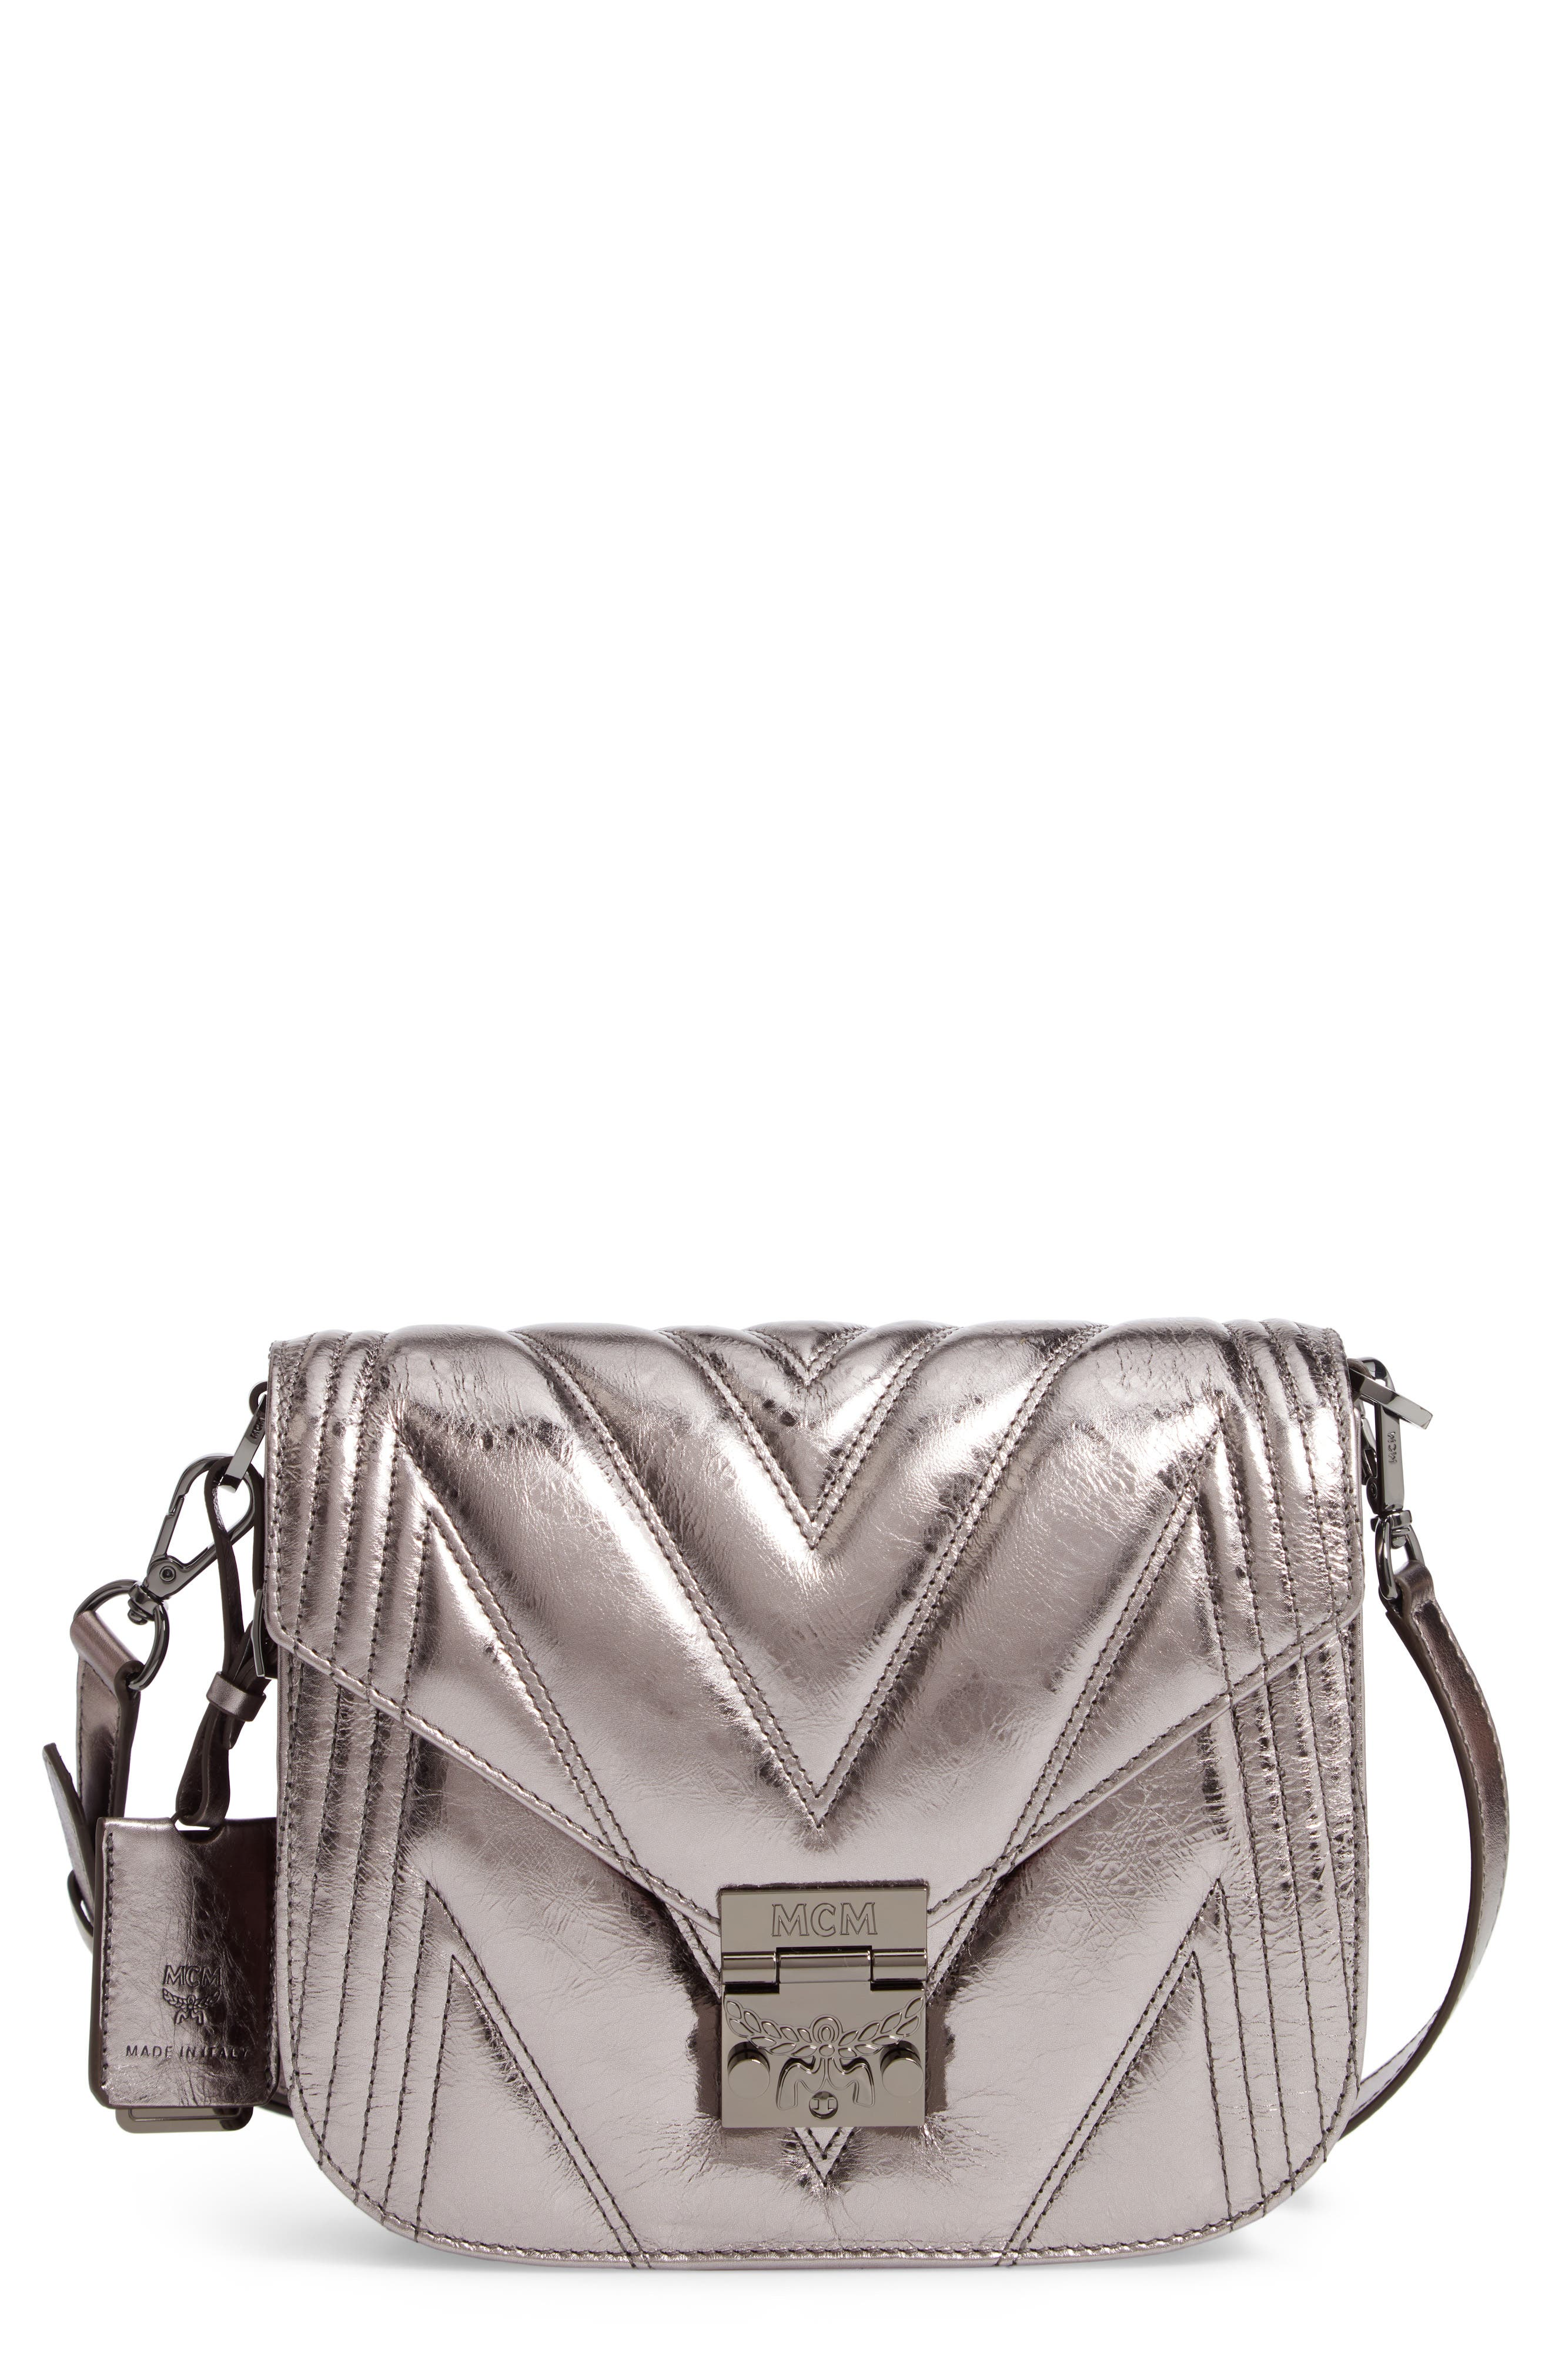 Patricia Quilted Metallic Leather Saddle Bag,                             Main thumbnail 1, color,                             BERLIN SILVER